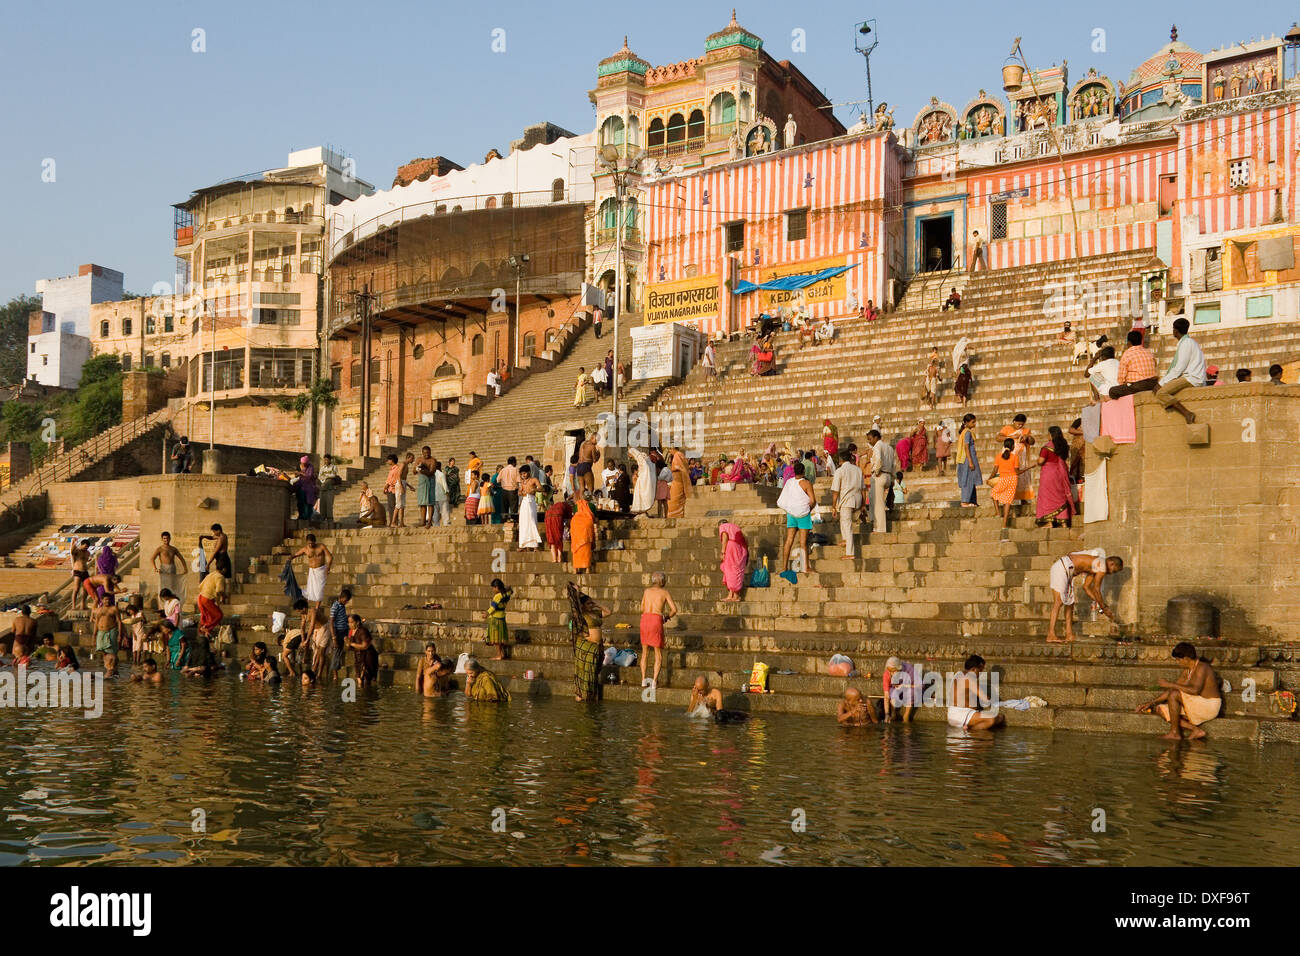 the holy river of india river ganges Set sail on a voyage of discovery as you enjoy expert-led excursions to sacred sites, vibrant cities, traditional villages and architectural wonders along the holy ganges river.